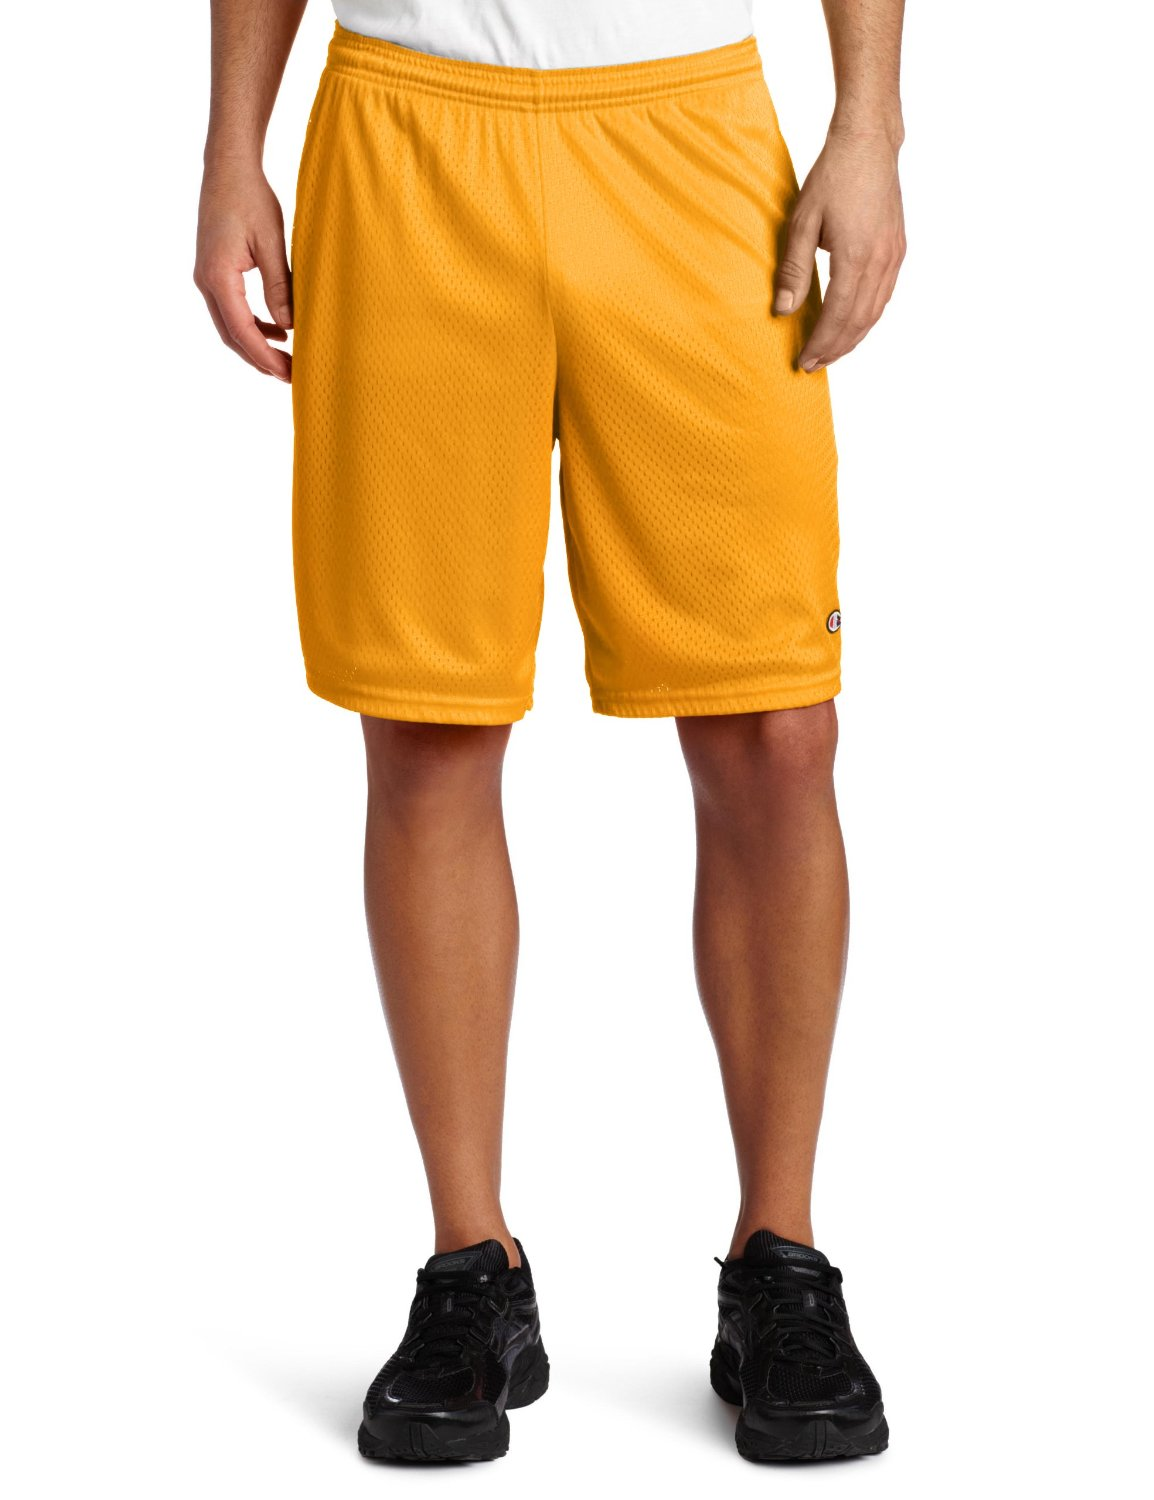 Mens Athletic Shorts With Pockets By Champion 81622